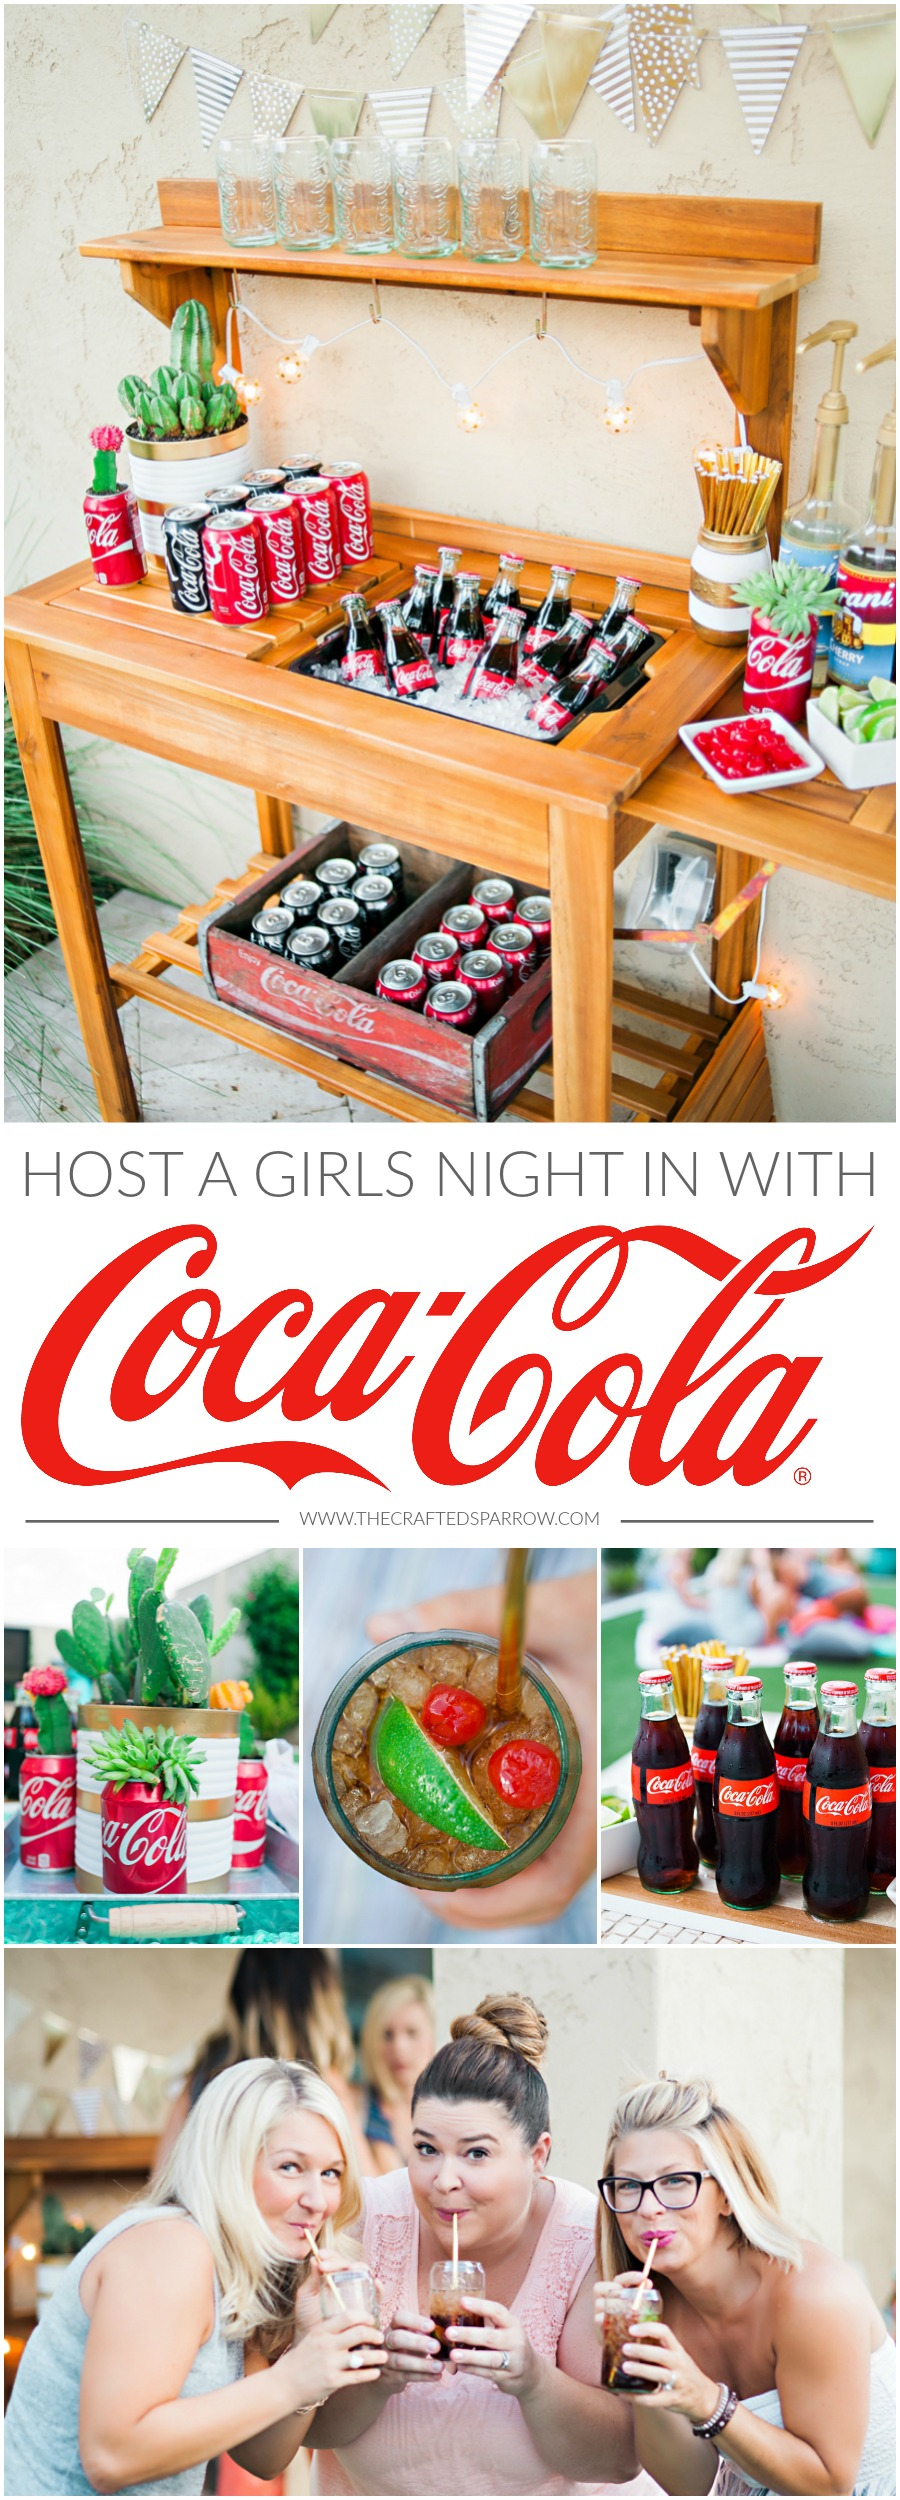 Girls Night In with Coca-Cola